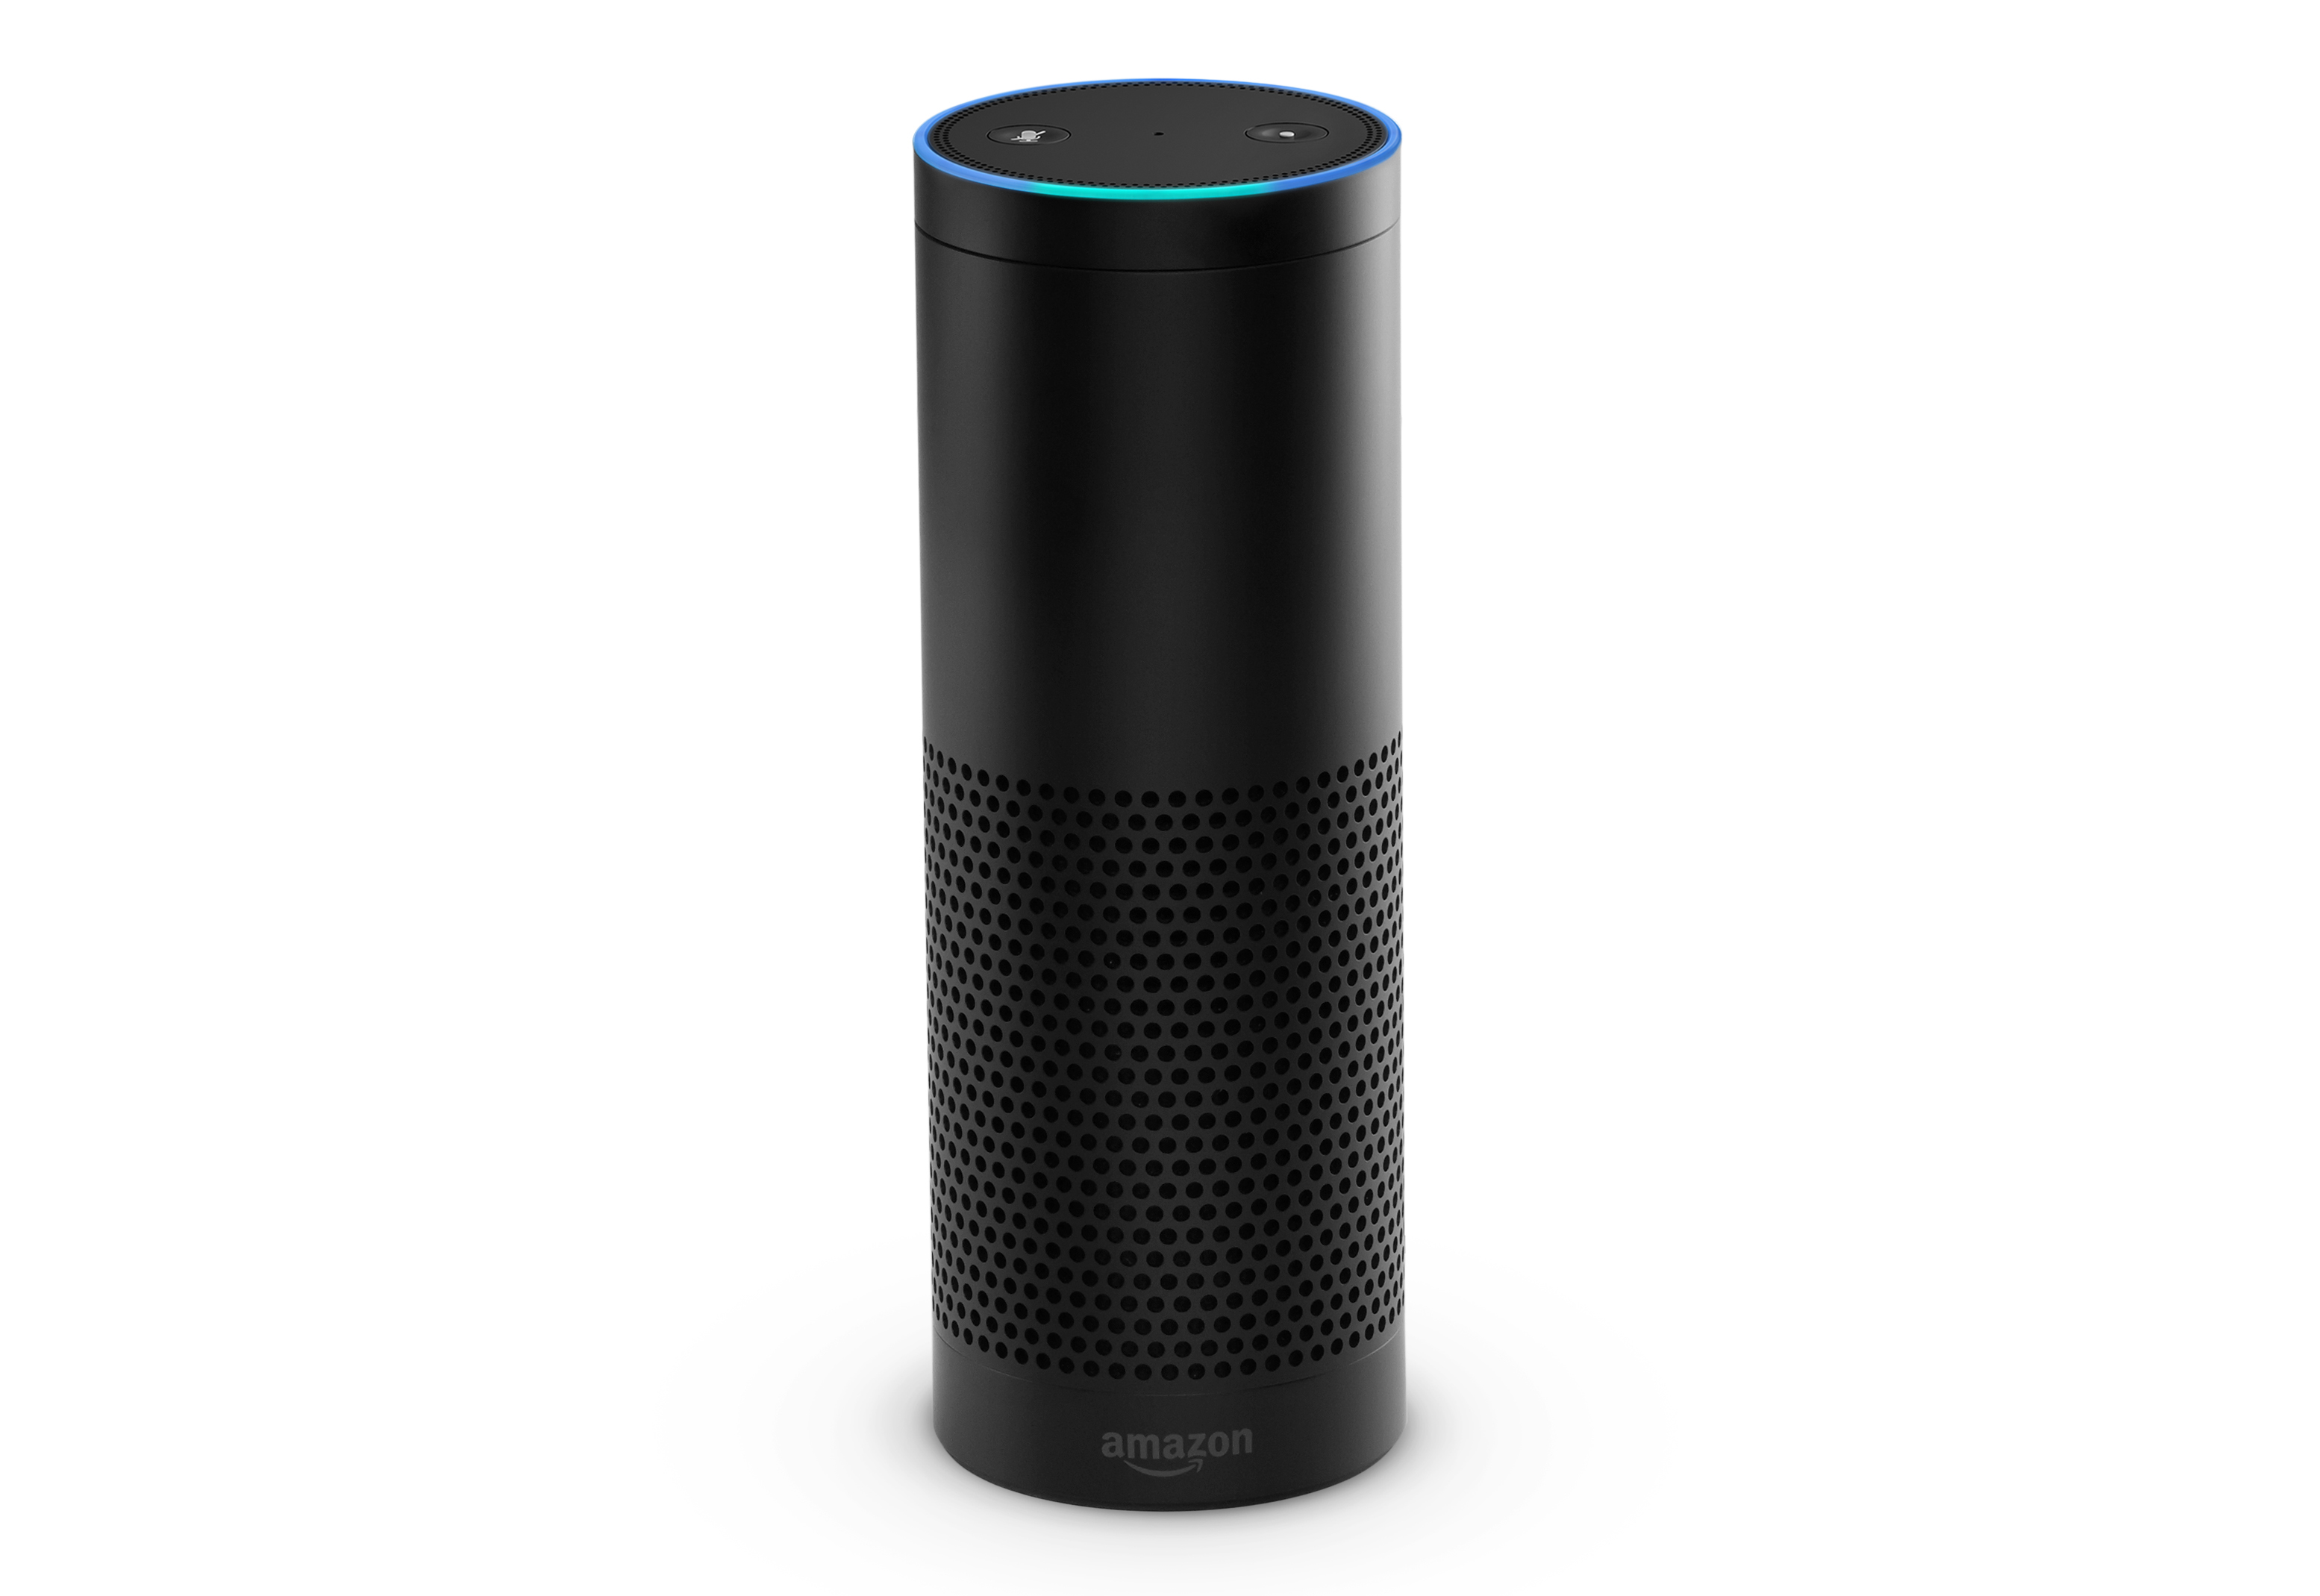 Amazon will reportedly release a smaller, less expensive version of its Echo speaker